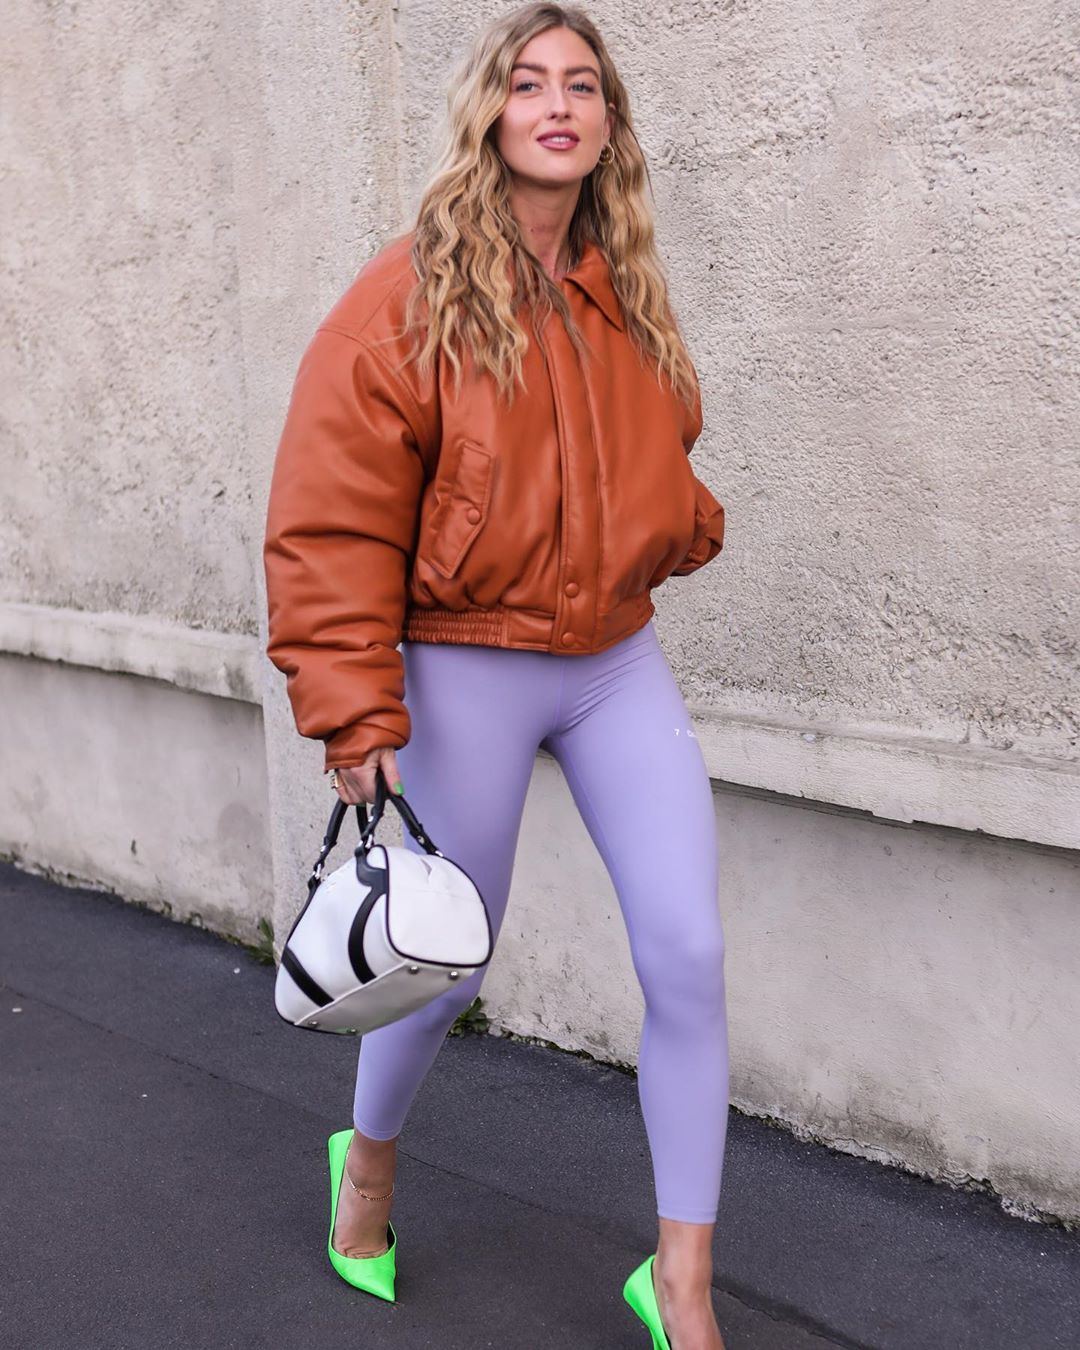 emili-sindlev-leggings-balenciaga-square-knife-neon-green-pumps